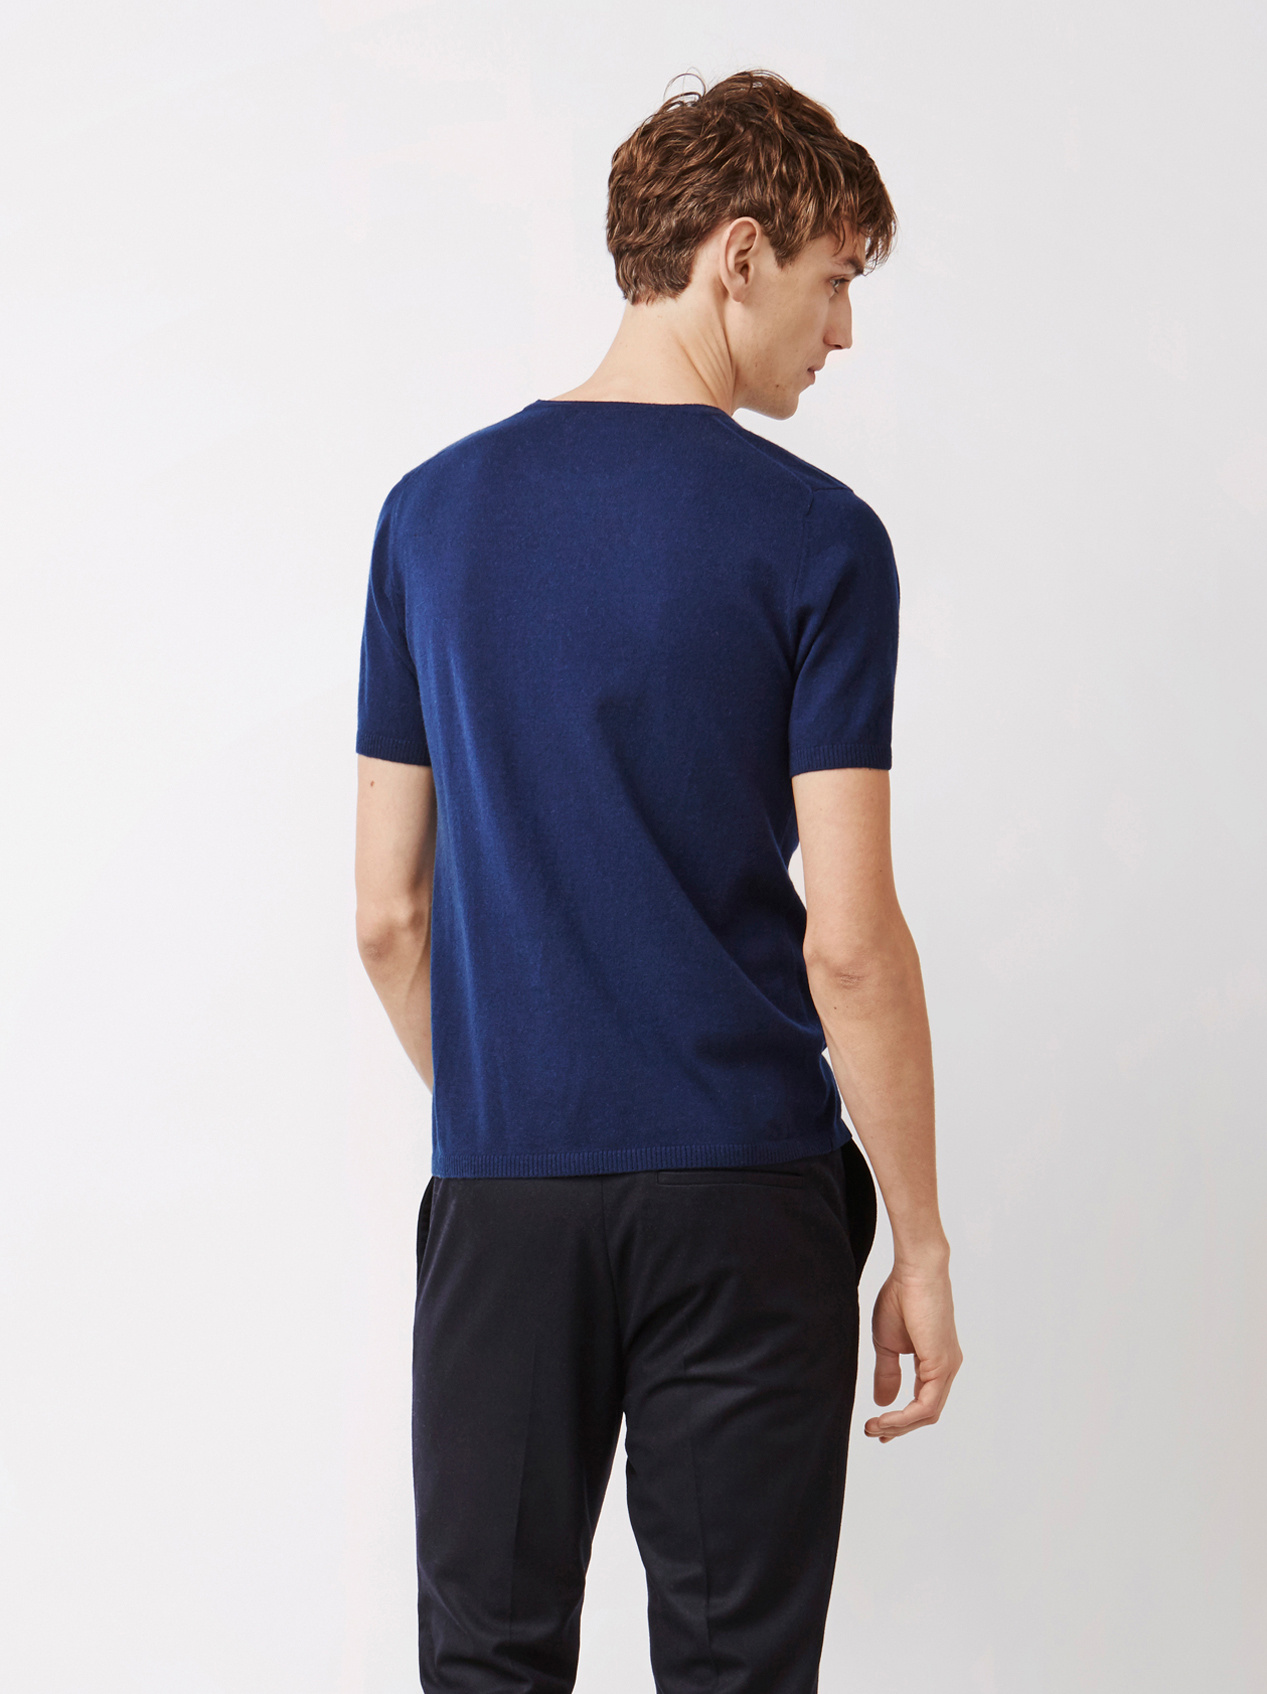 Soft Goat Men's T-Shirt With Pocket Navy